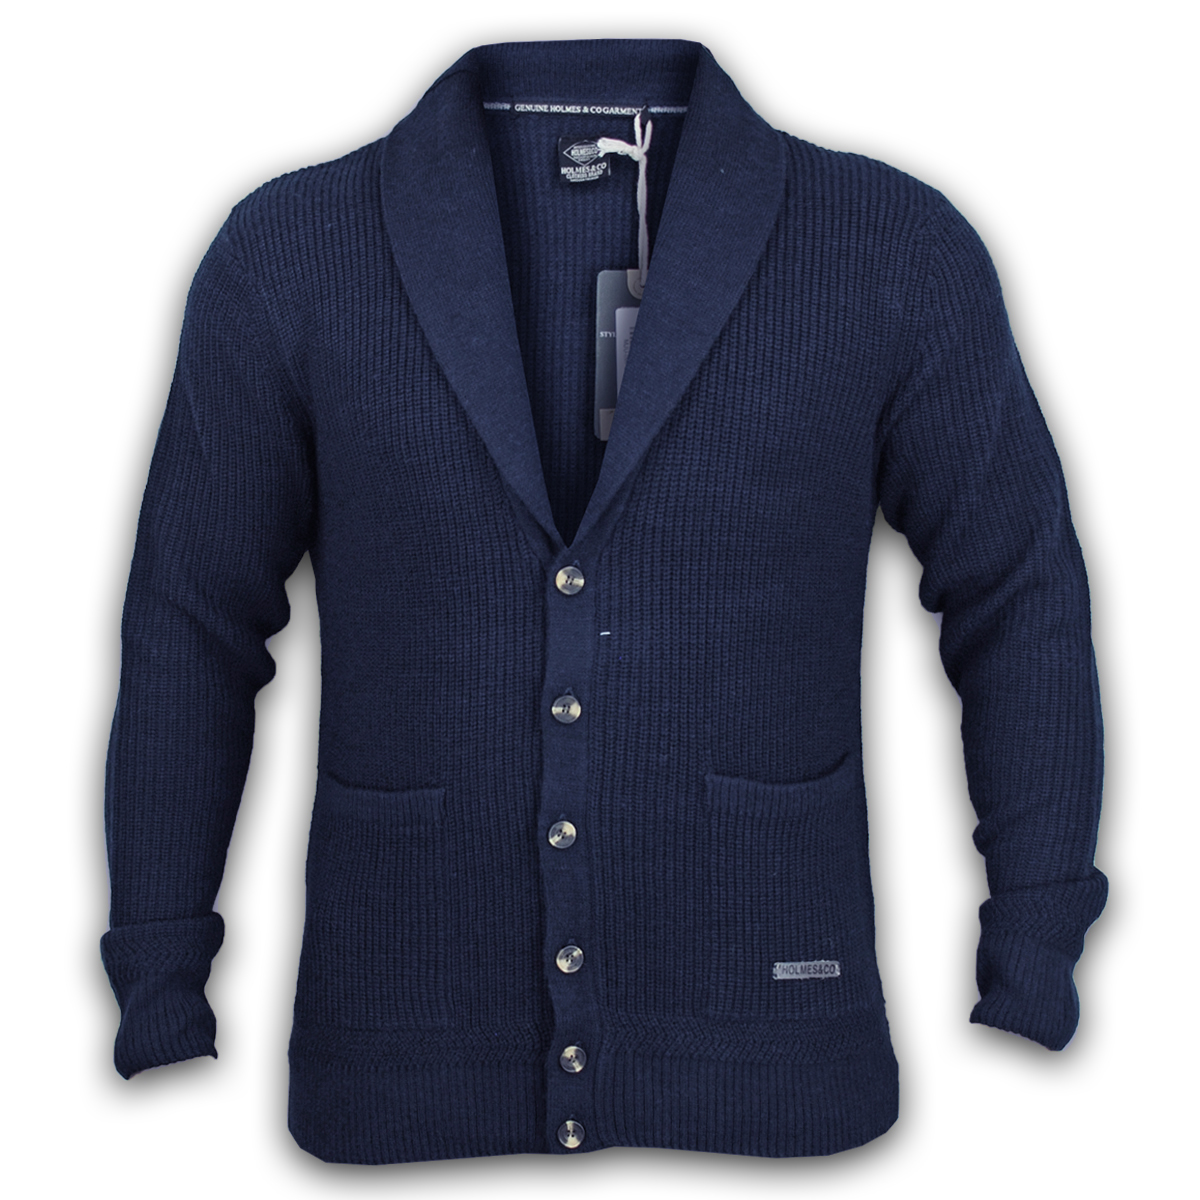 Shop mens cardigans on nazhatie-skachat.gq Free shipping and free returns on eligible items. Options to choose from include cotton, merino wool, cashmere, and linen. Cotton. Cotton is a very versatile fabric choice for cardigans for men in terms of style and warmth. It's also an extremely durable fabric and can handle tougher treatment.